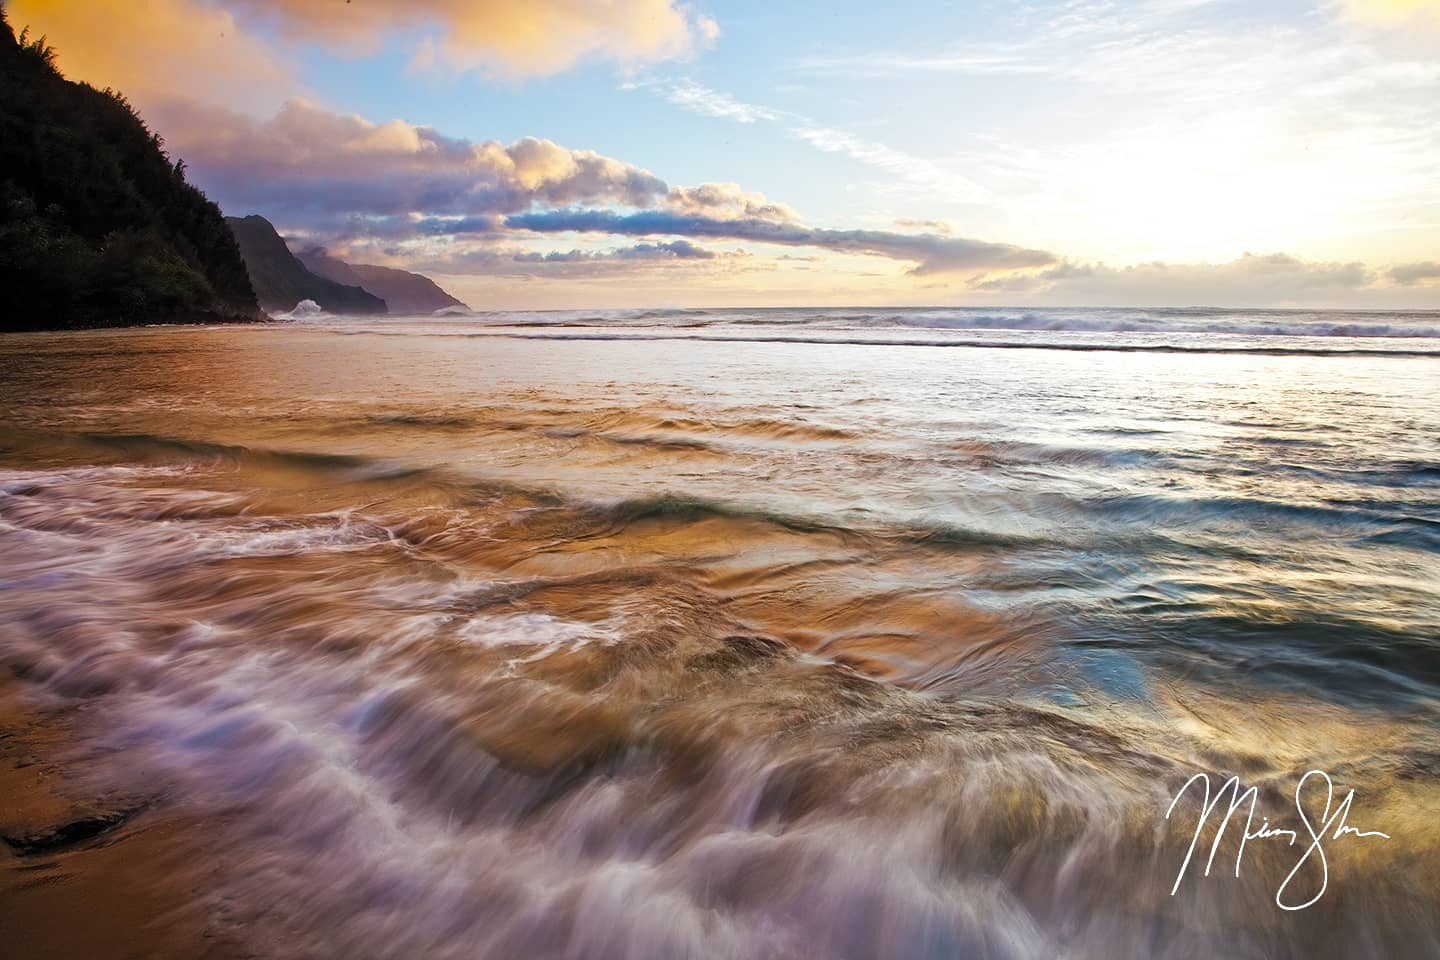 Open edition fine art print of Napali Coast Rush from Mickey Shannon Photography. Location: Ke'e Beach, Napali Coast, Kauai, Hawaii